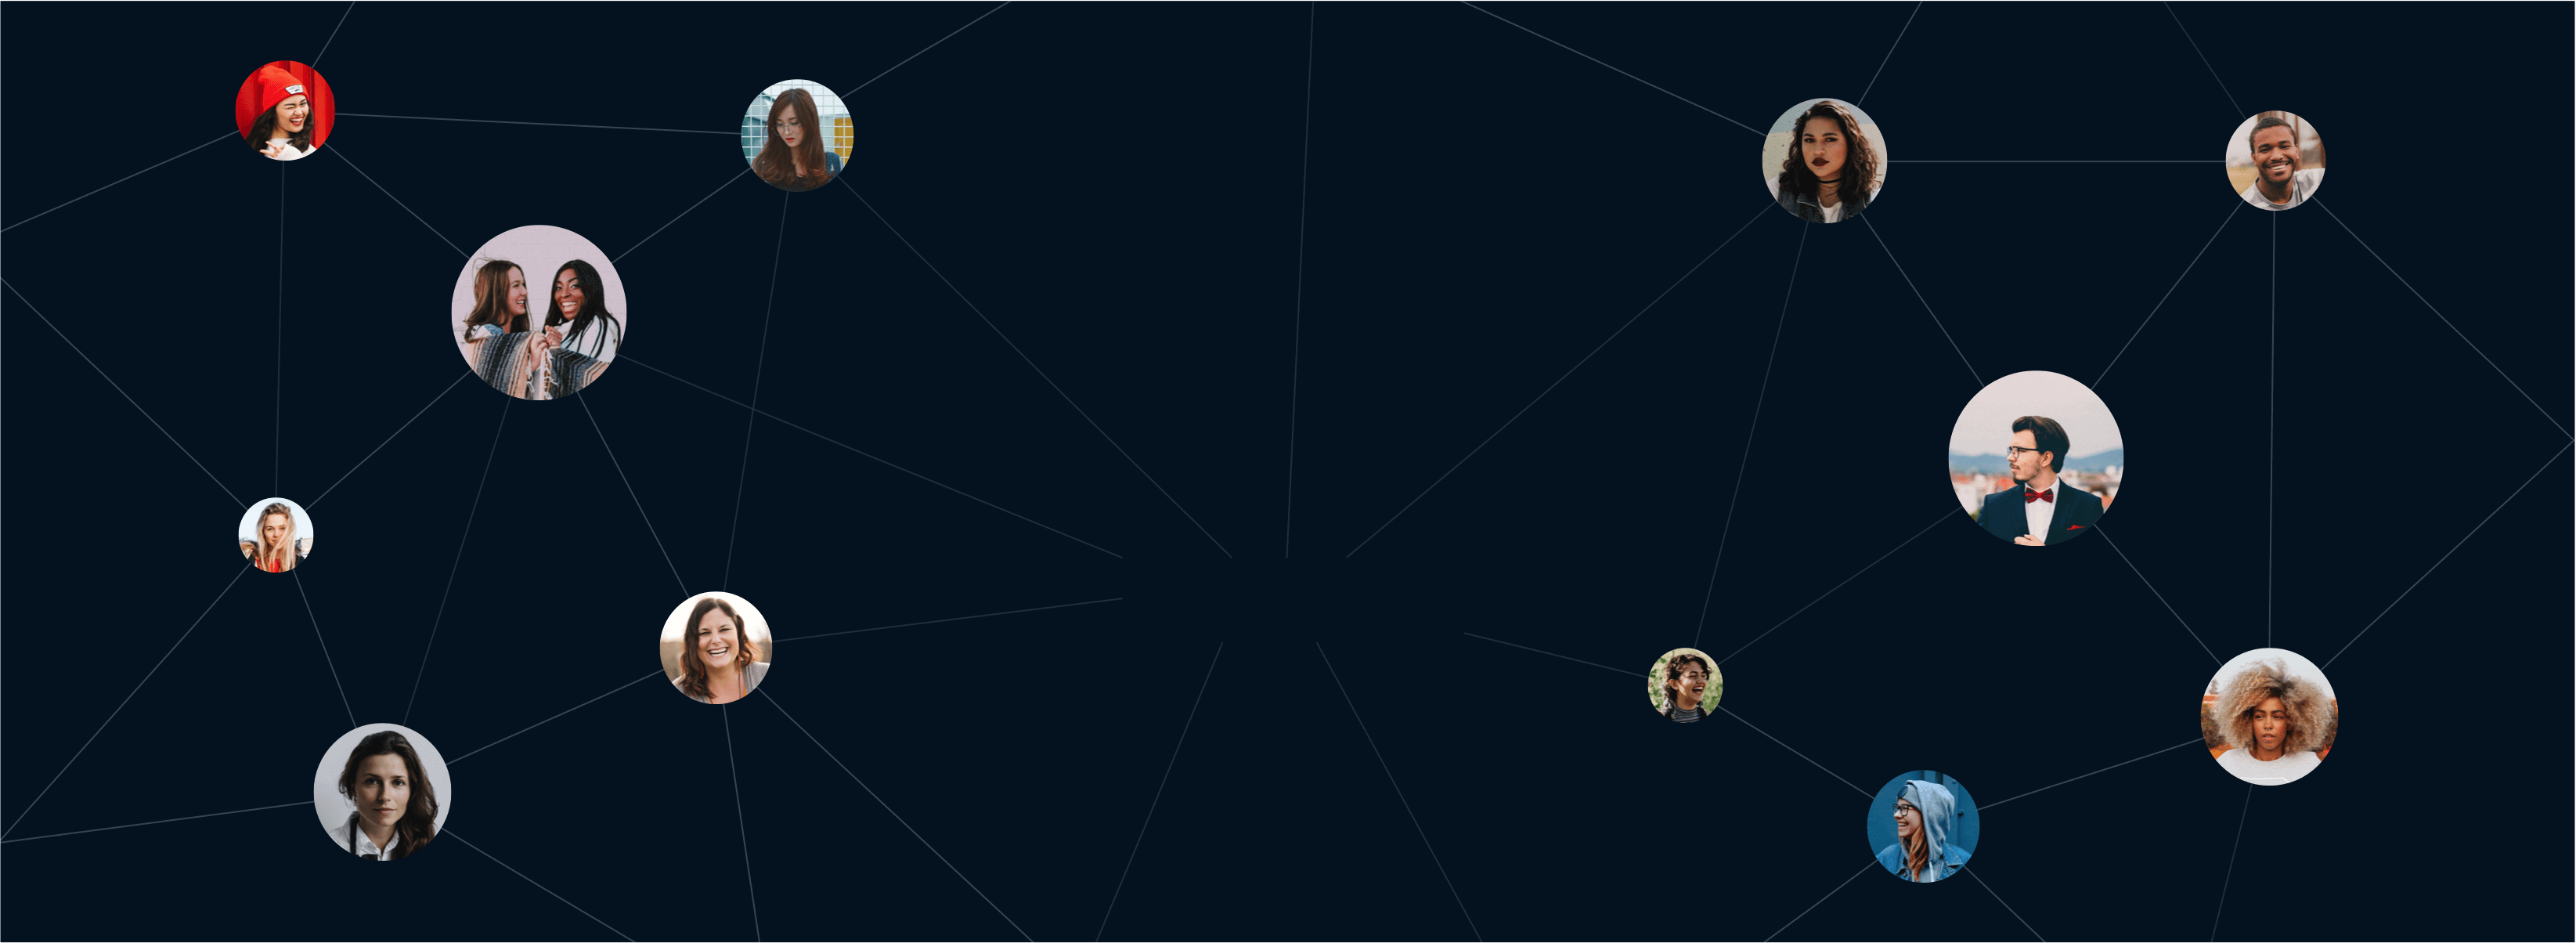 Collage of interconnected user avatars.